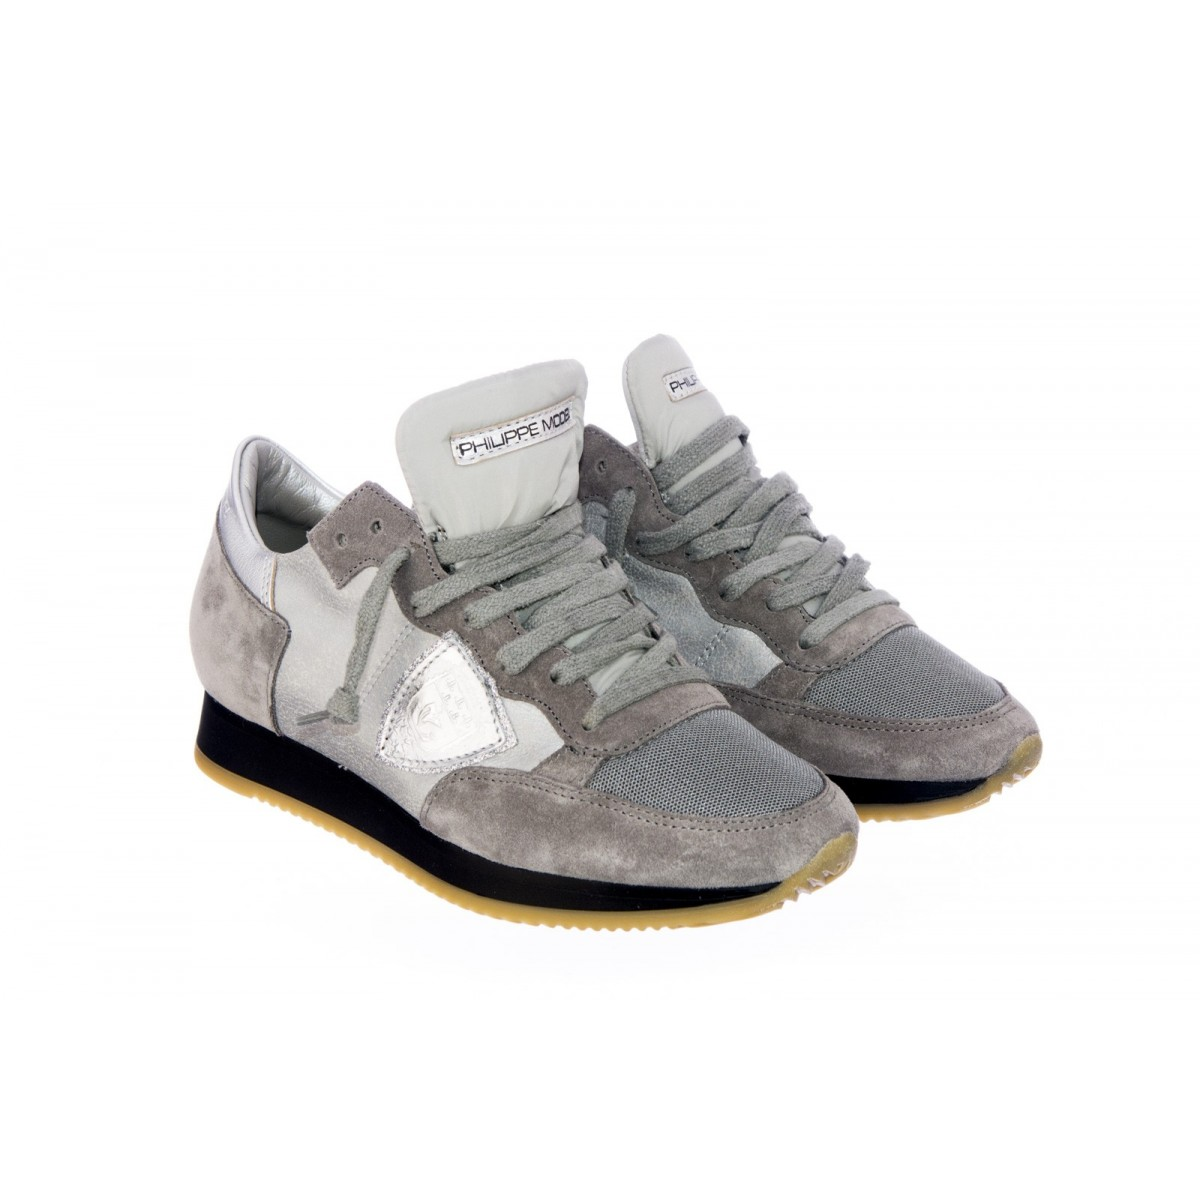 Scarpa Philippe model paris - Trld low tropez world